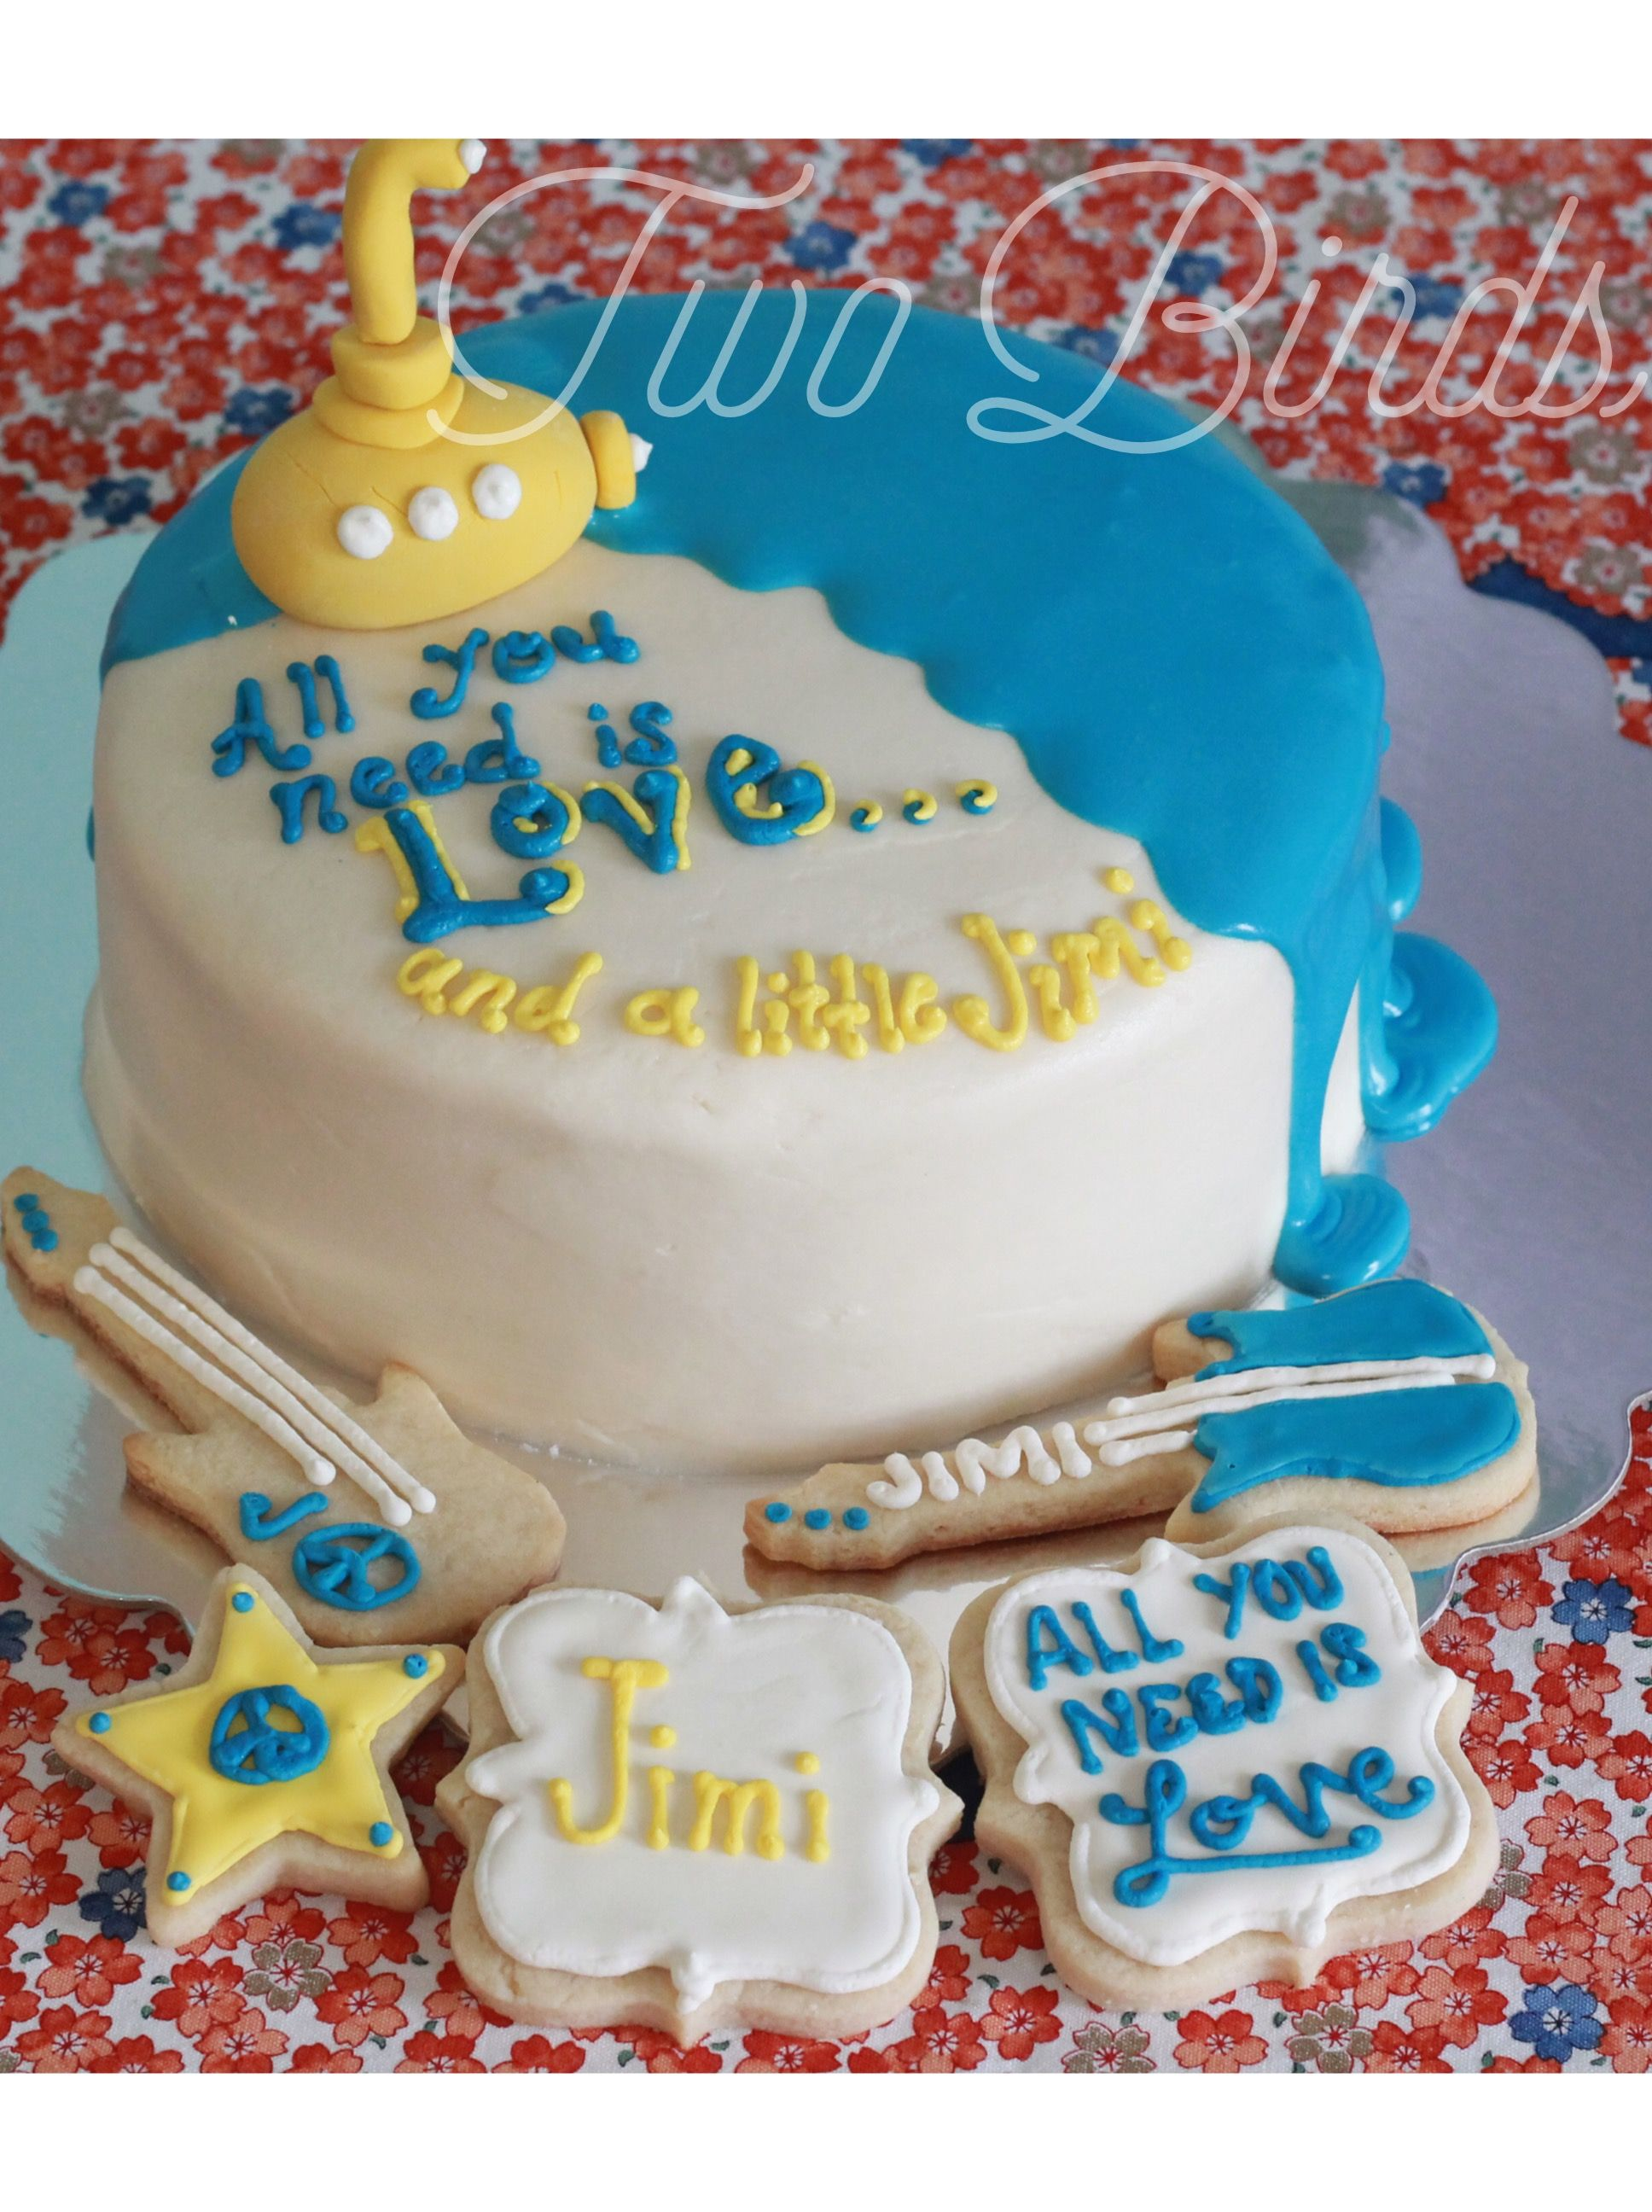 All You Need Is Love Cake Beatles Cake Yellow Submarine Baby